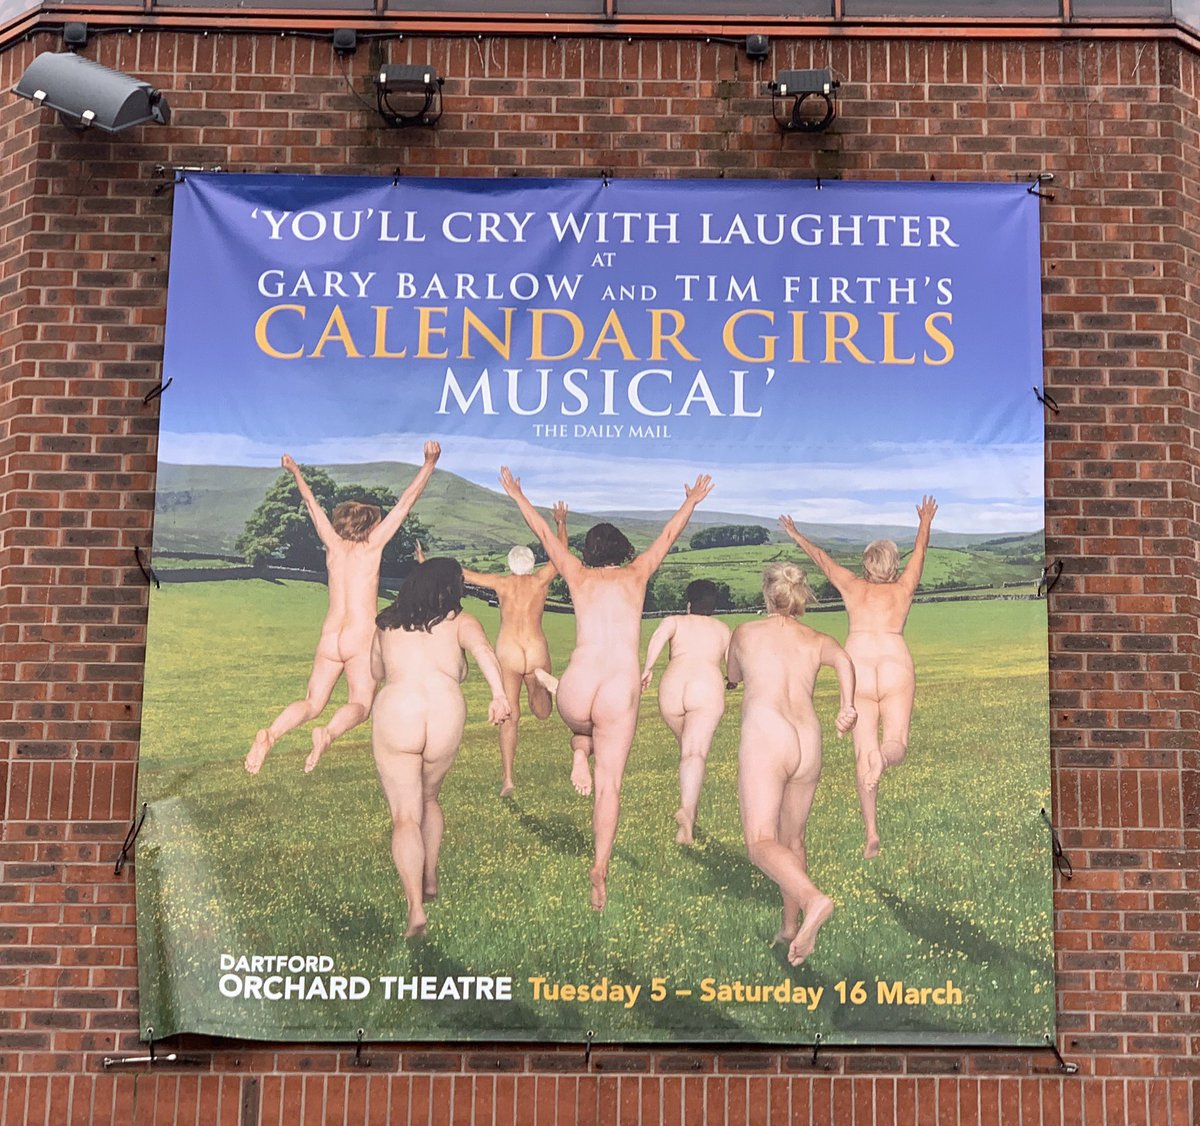 Just seen the fantastic new touring version of @thegirlsmusical, beautifully directed by Matt Ryan to bring out the sincere heart of this great British folk musical. I loved it in town — saw it four or five times — but now it's played for truth, feeling & joy.